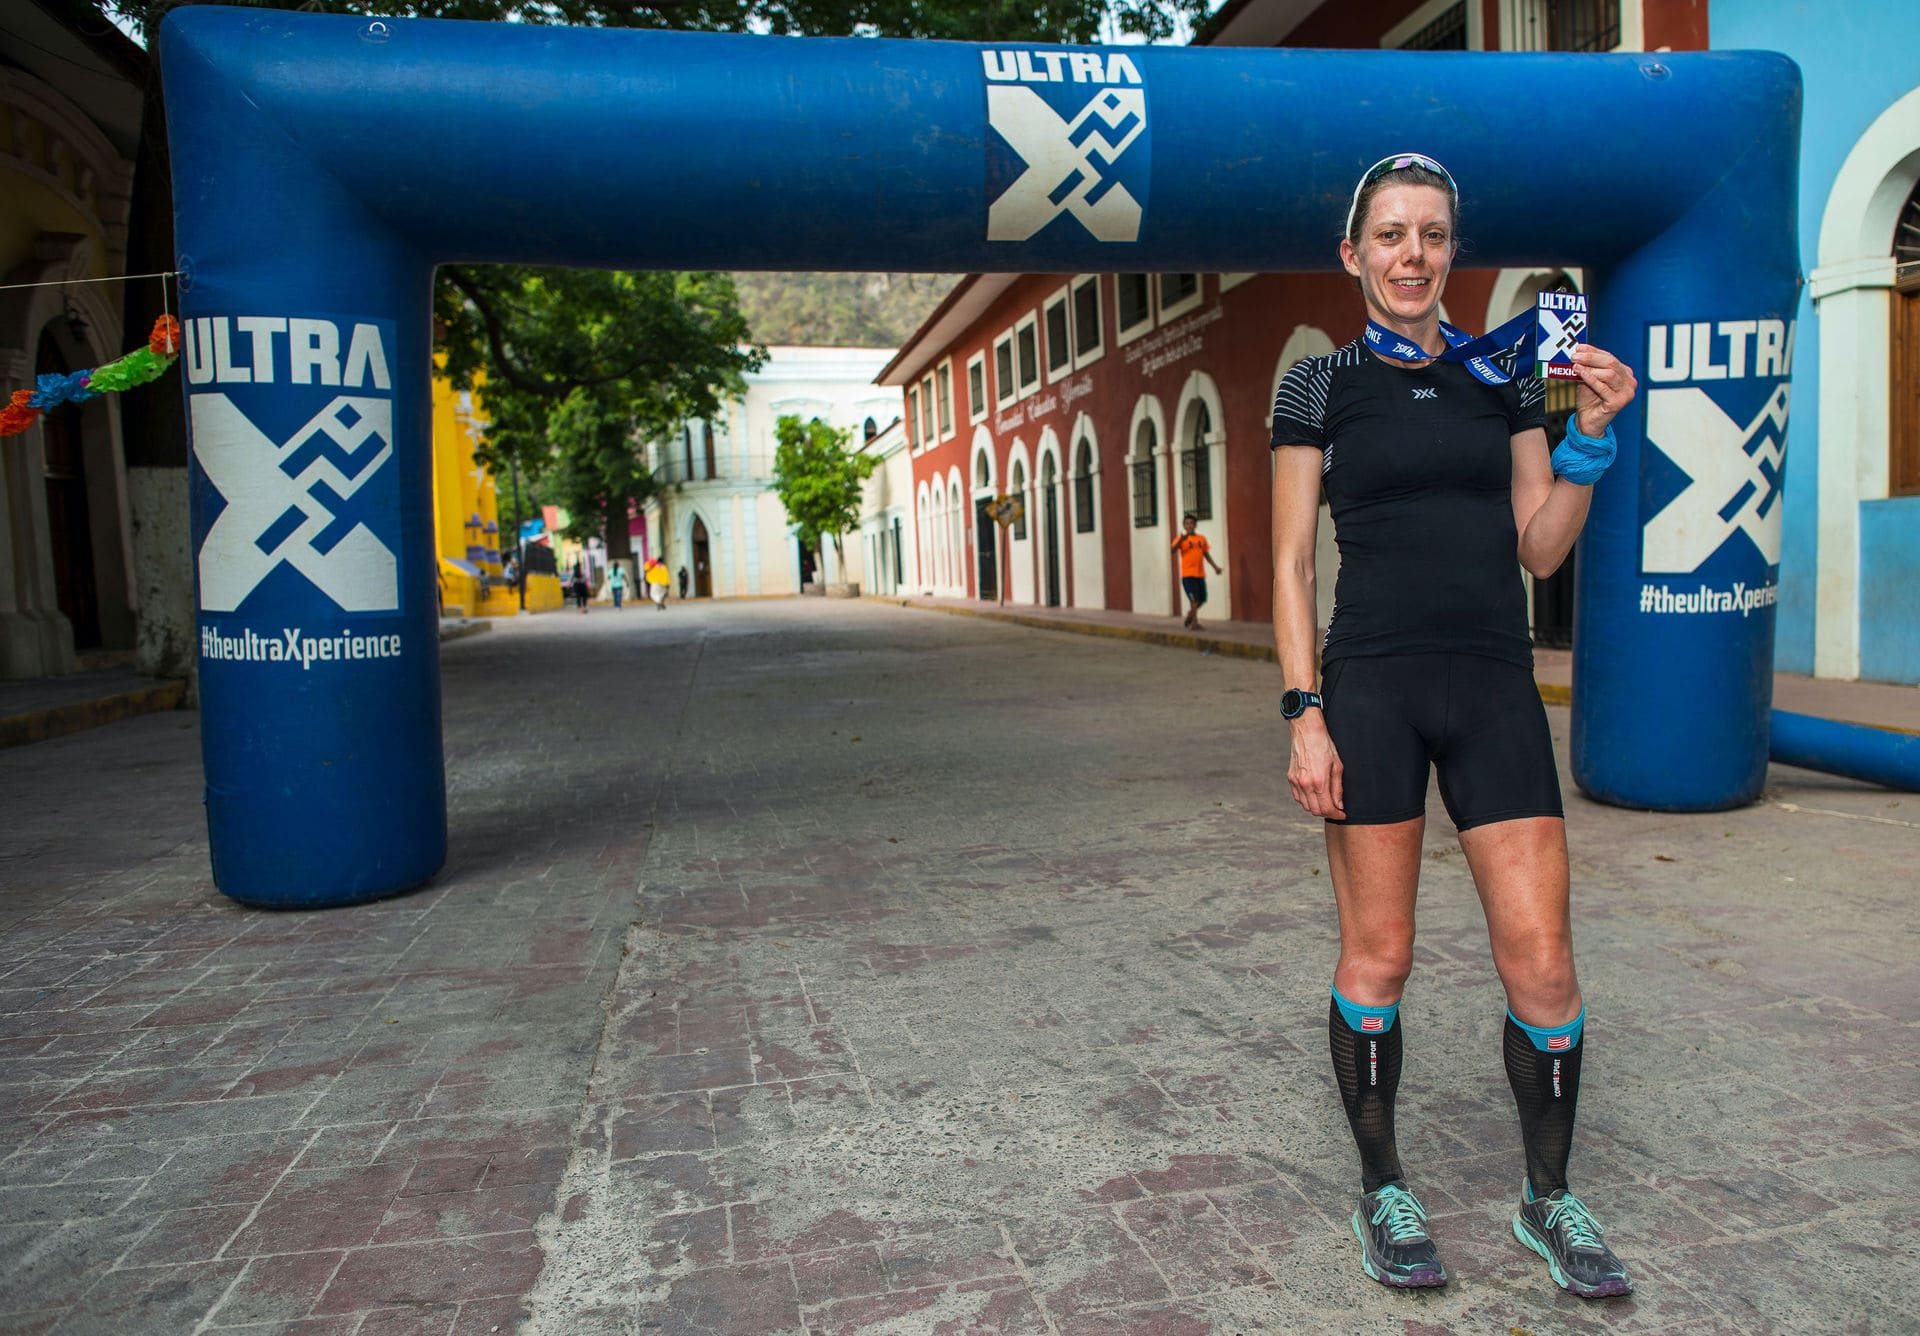 Ultra X World Championships 2021 - Mexico 2019 Qualifiers Ultra X